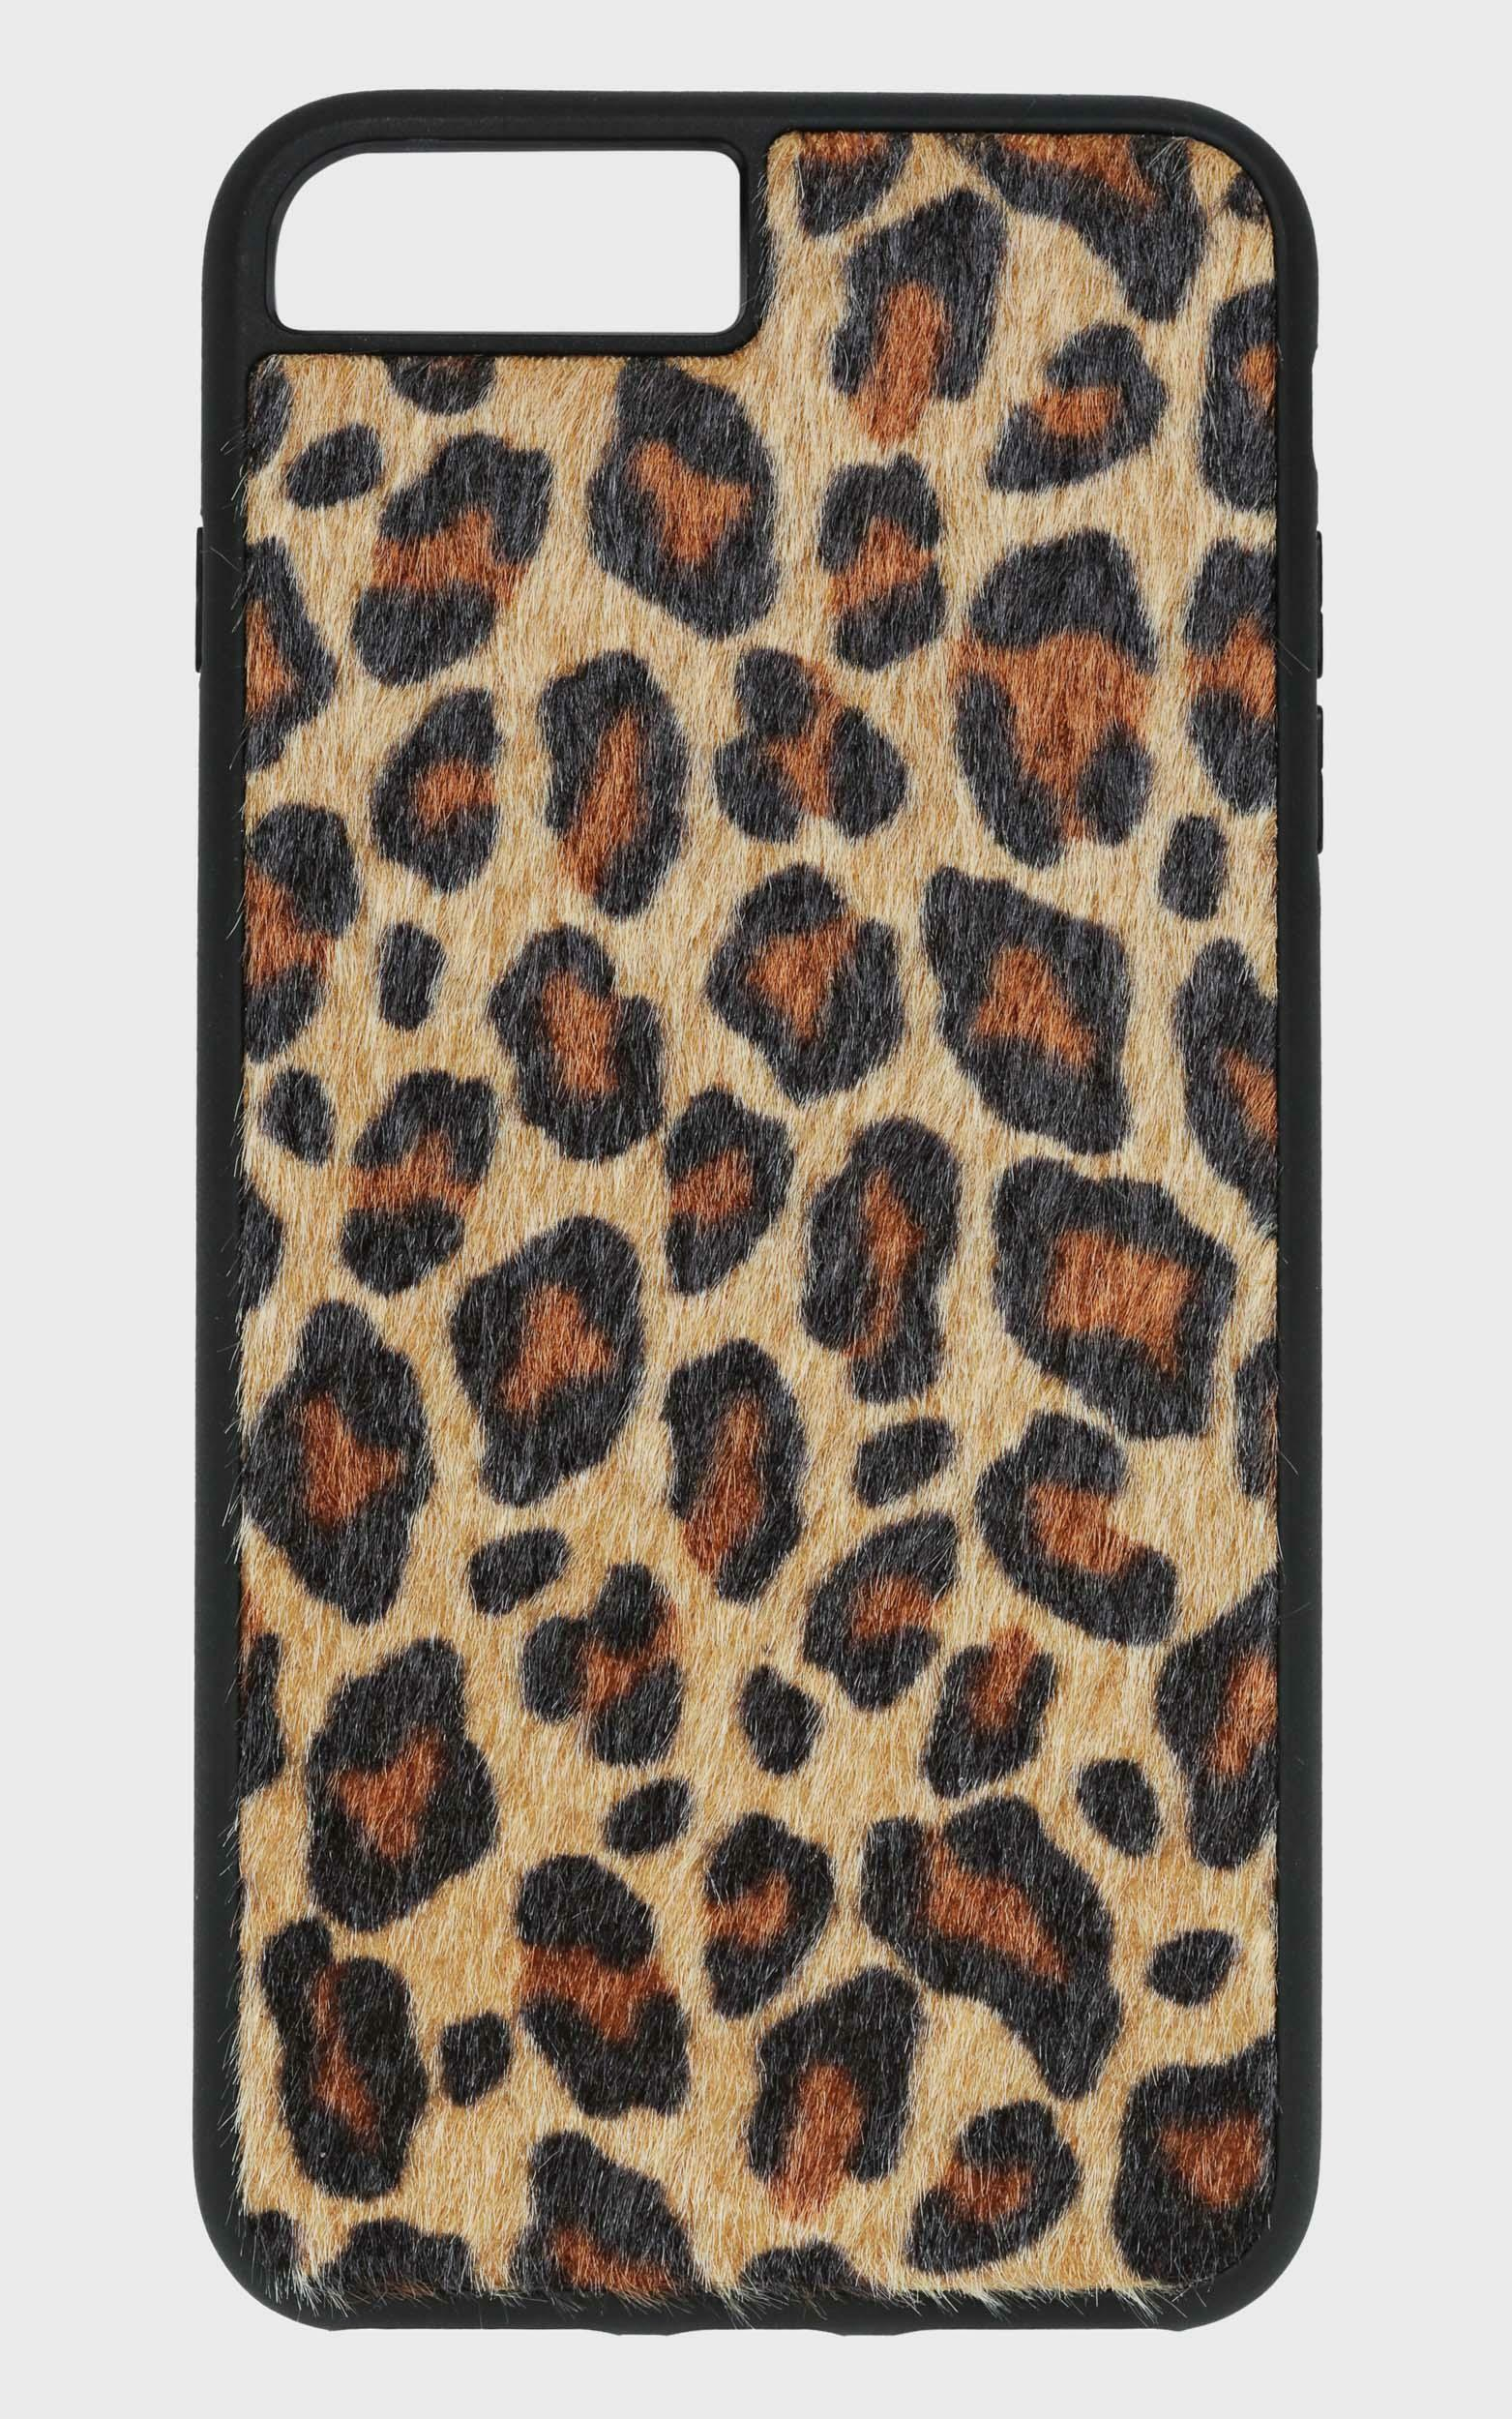 Georgia Mae - The Tan Leopard Iphone Case  - iXS, Brown, hi-res image number null